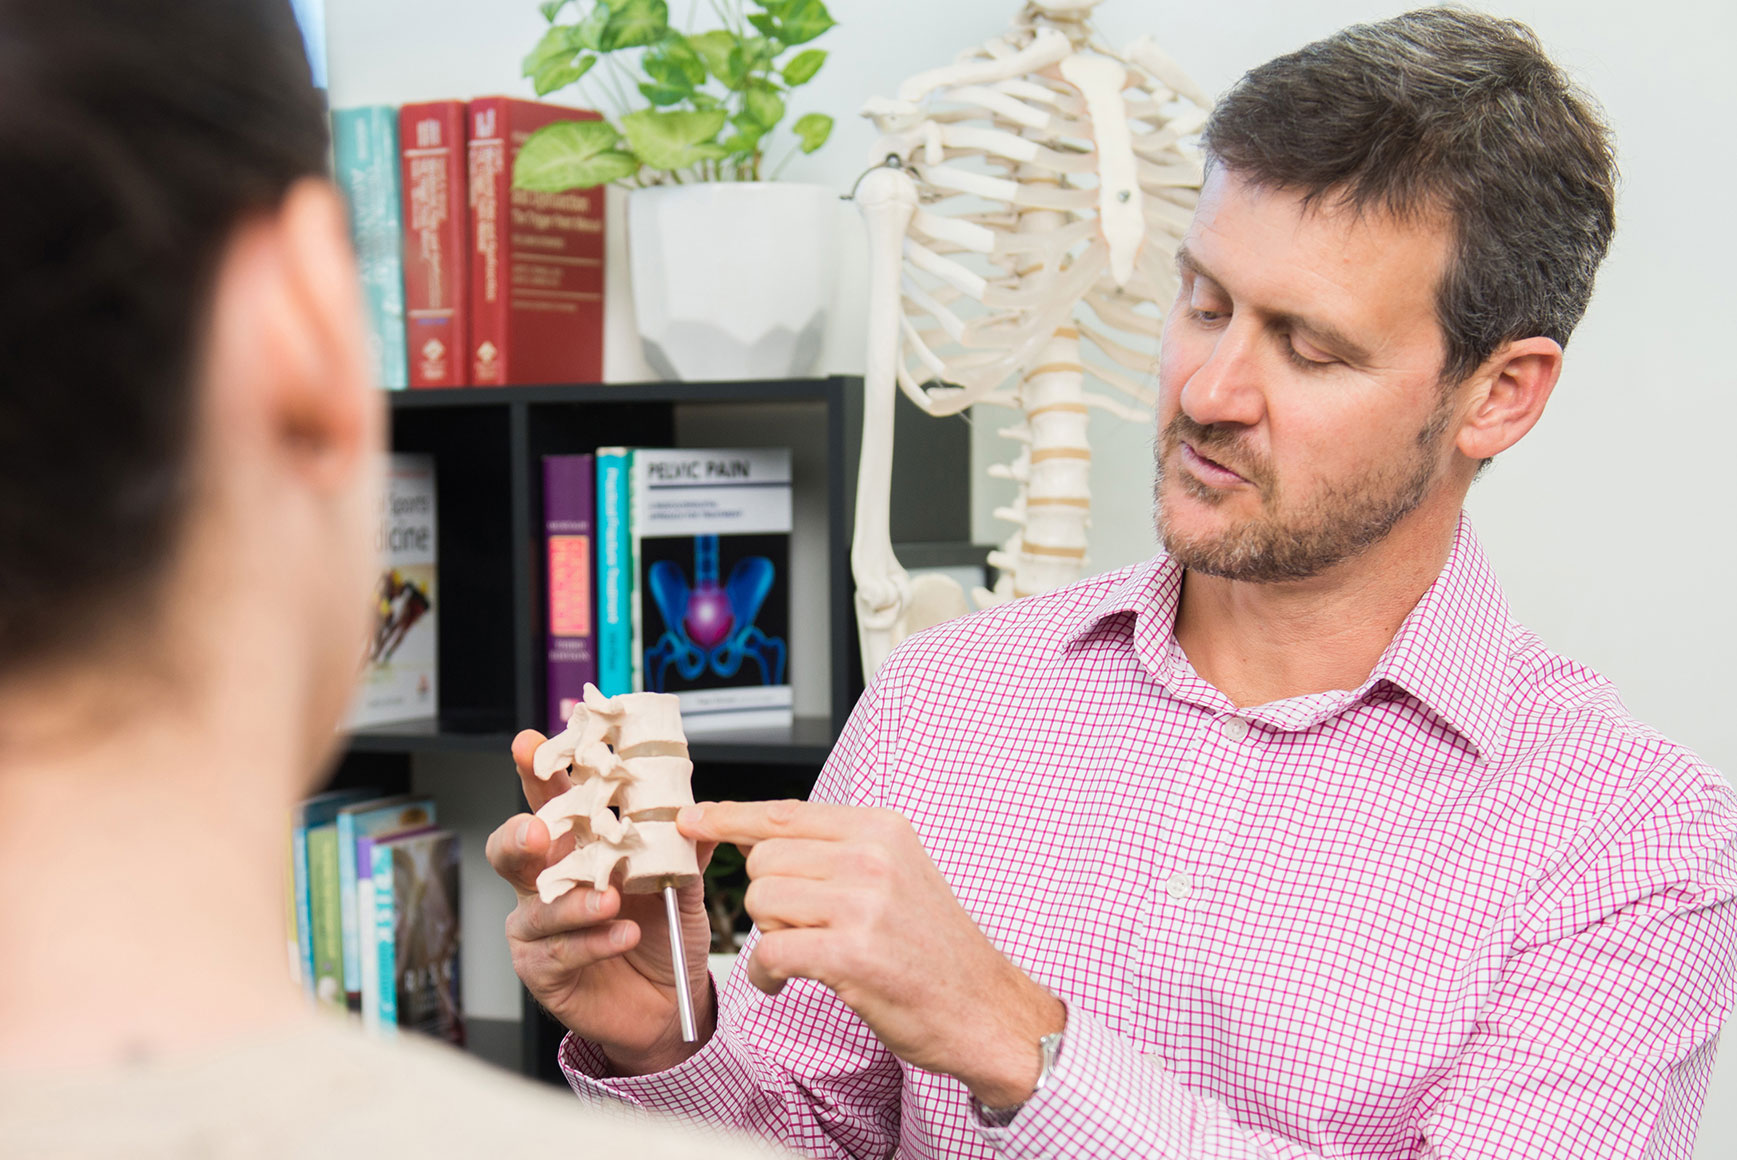 treating pain in a complex system - musculoskeletal medicine